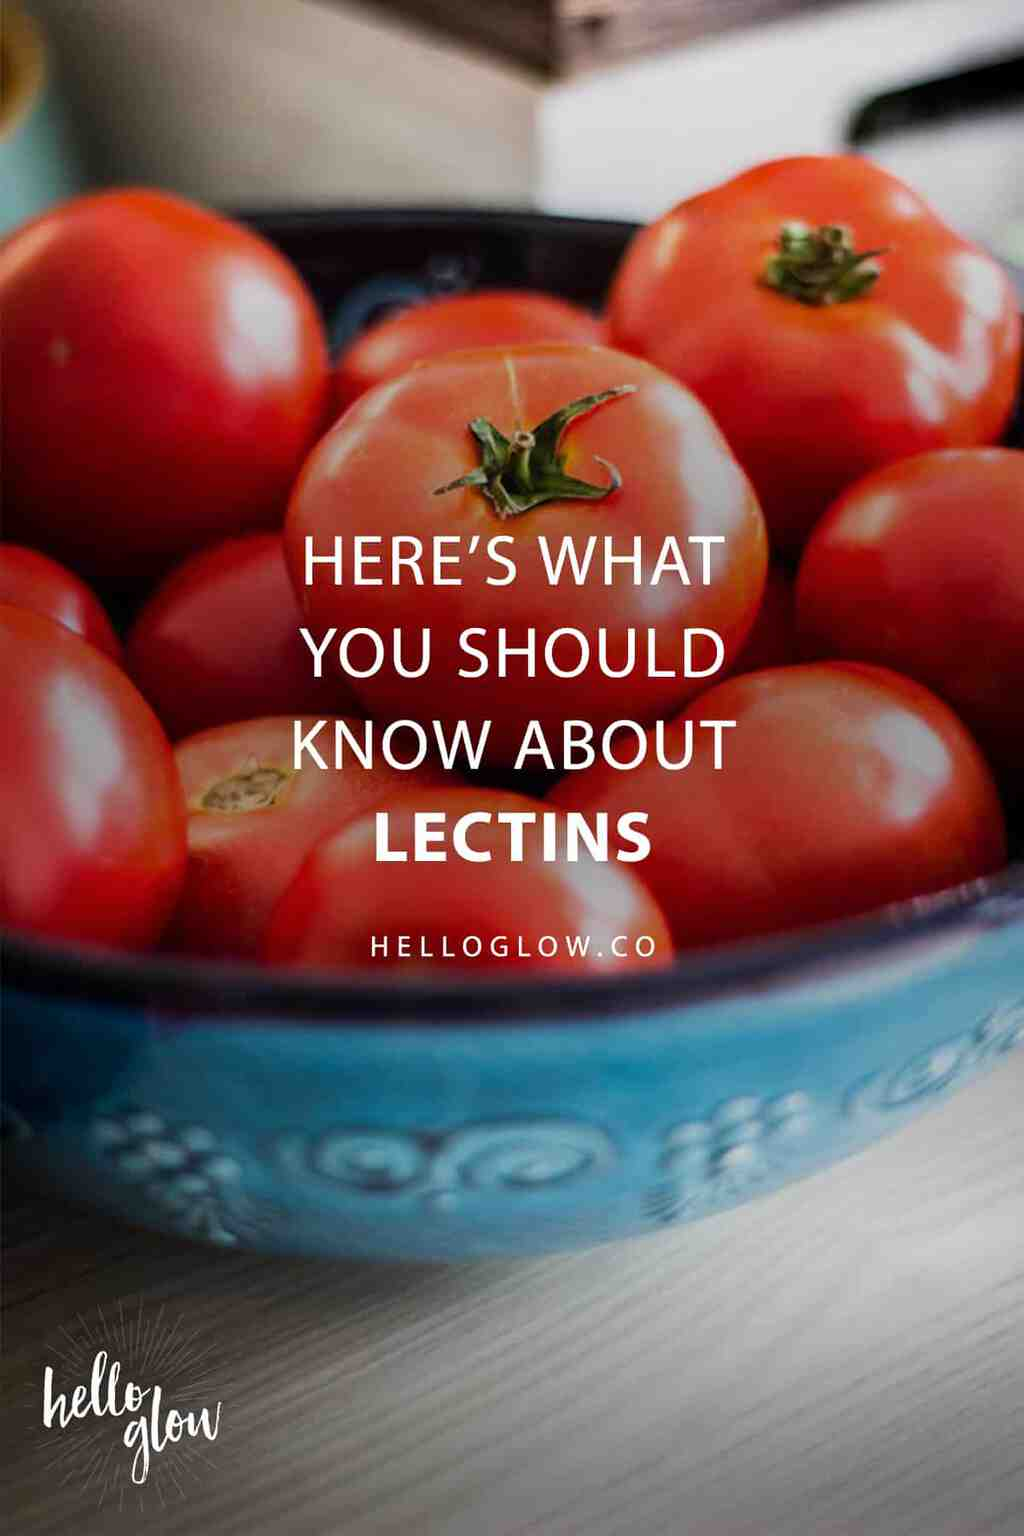 Here's What You Should Know About Lectins